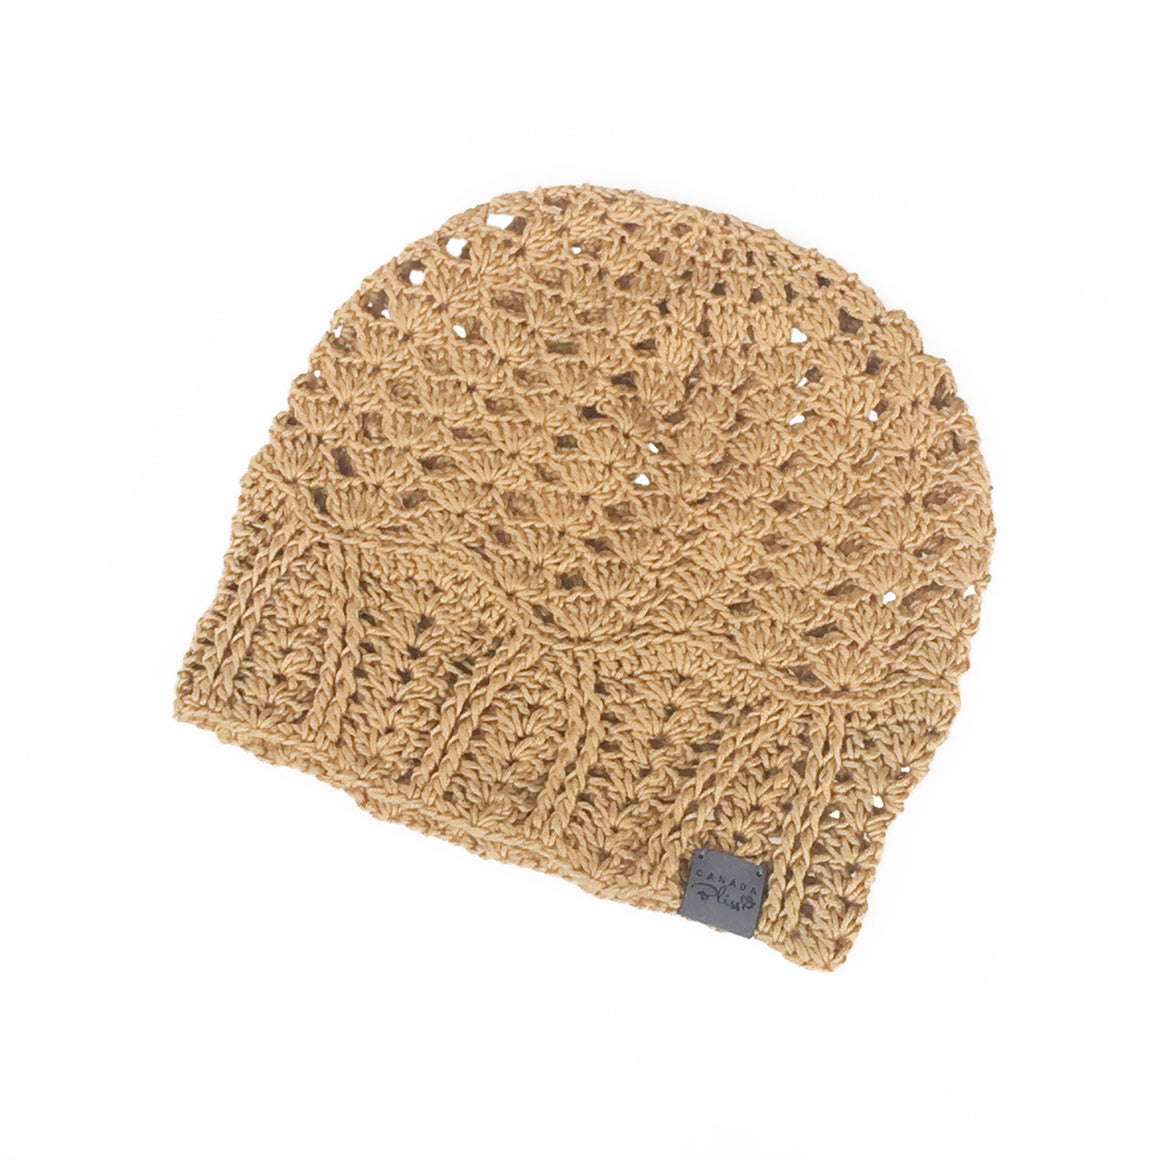 Mustard Cherish Bamboo Lightweight Hat Crochet Knit Hat Canada Bliss Hot Accessories Celebrity Fashion Style Beanie Spring Summer Fall Winter Fashion